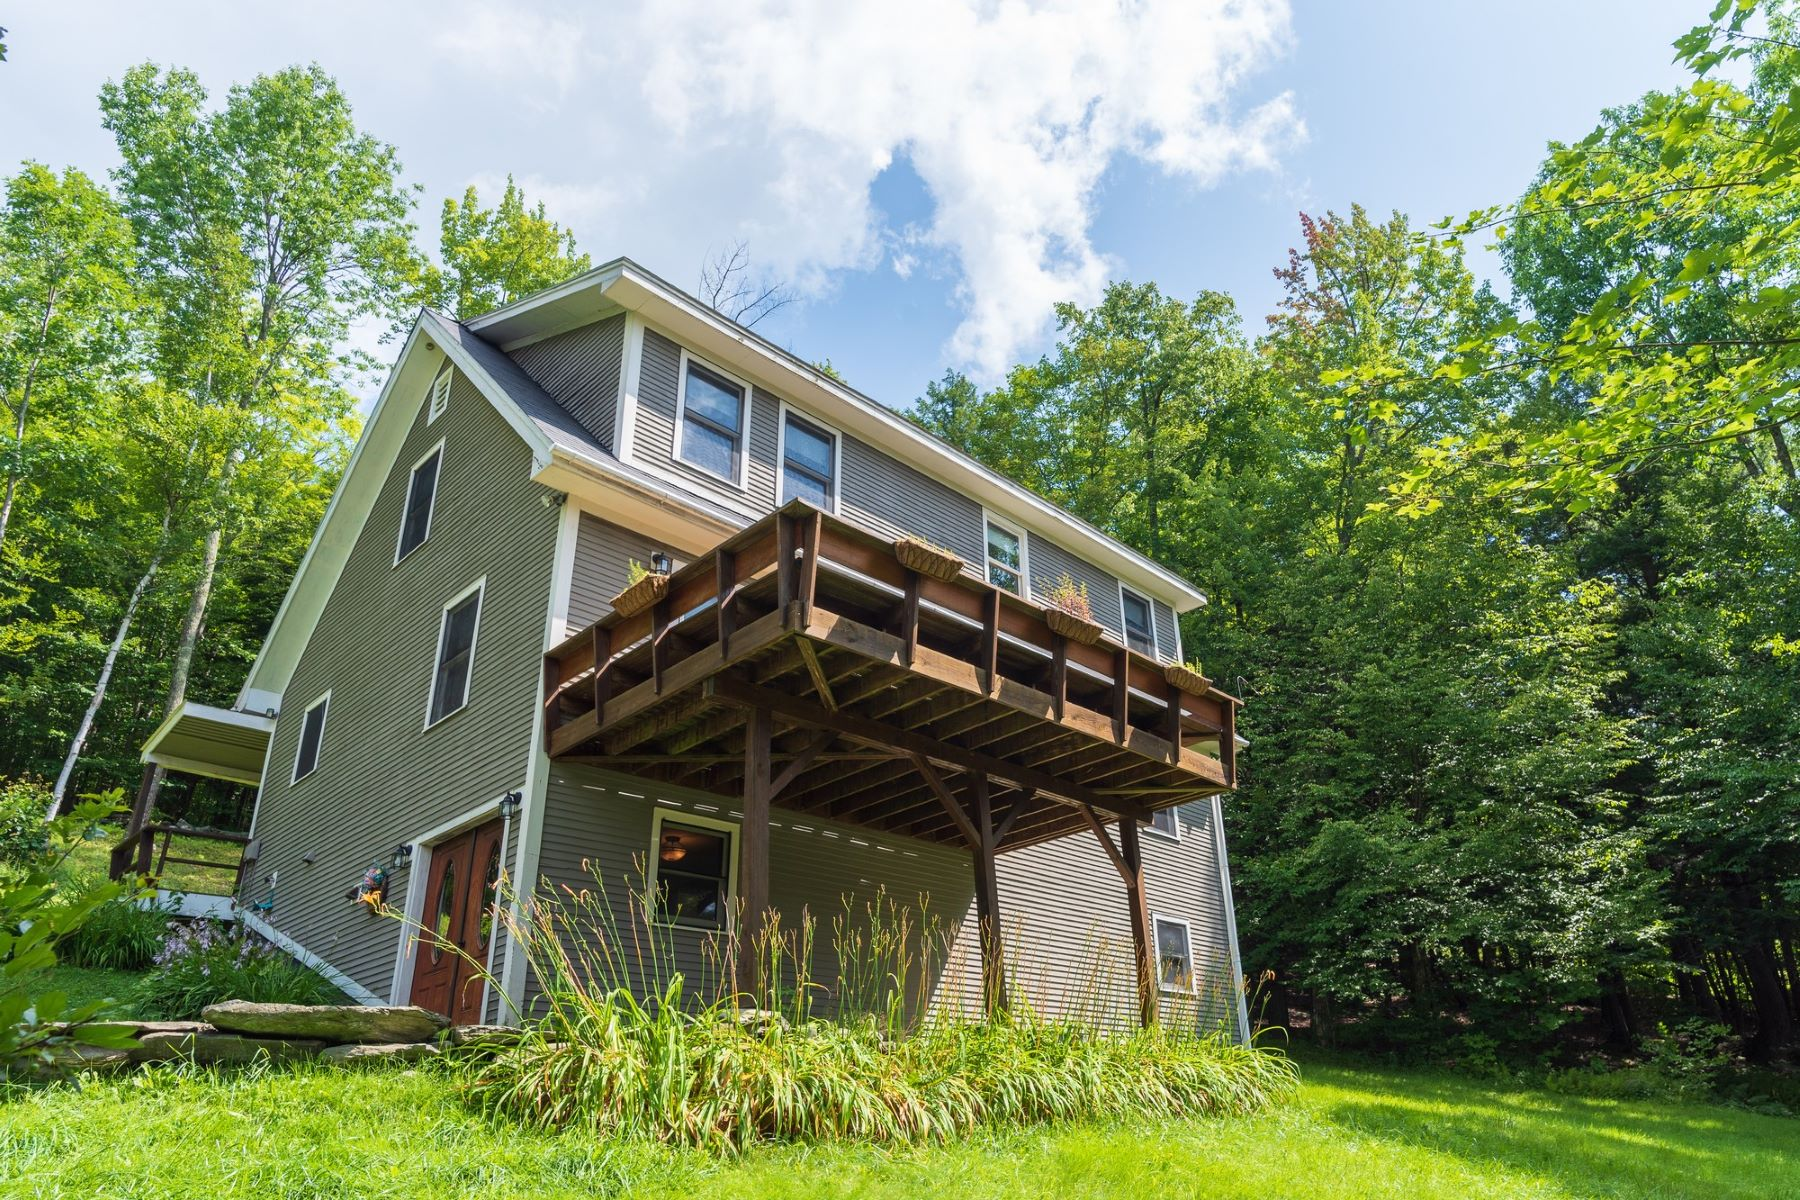 Single Family Homes for Sale at 247 Smith Road, Fayston 247 Smith Rd Fayston, Vermont 05660 United States